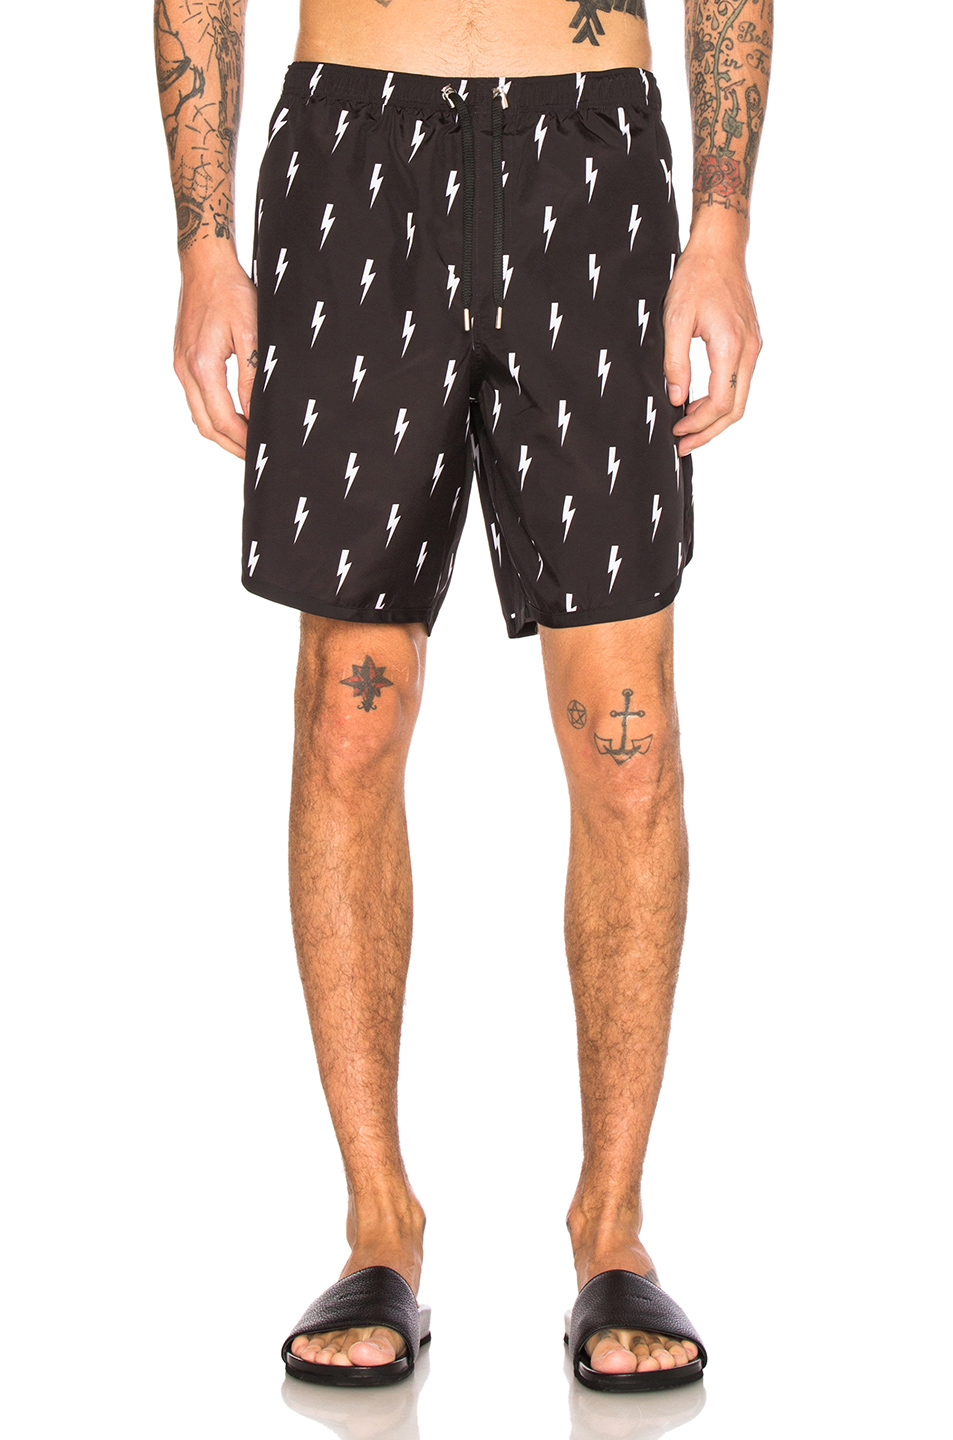 Neil Barrett Thunderbolt Swim Trunks in Abstract,Black